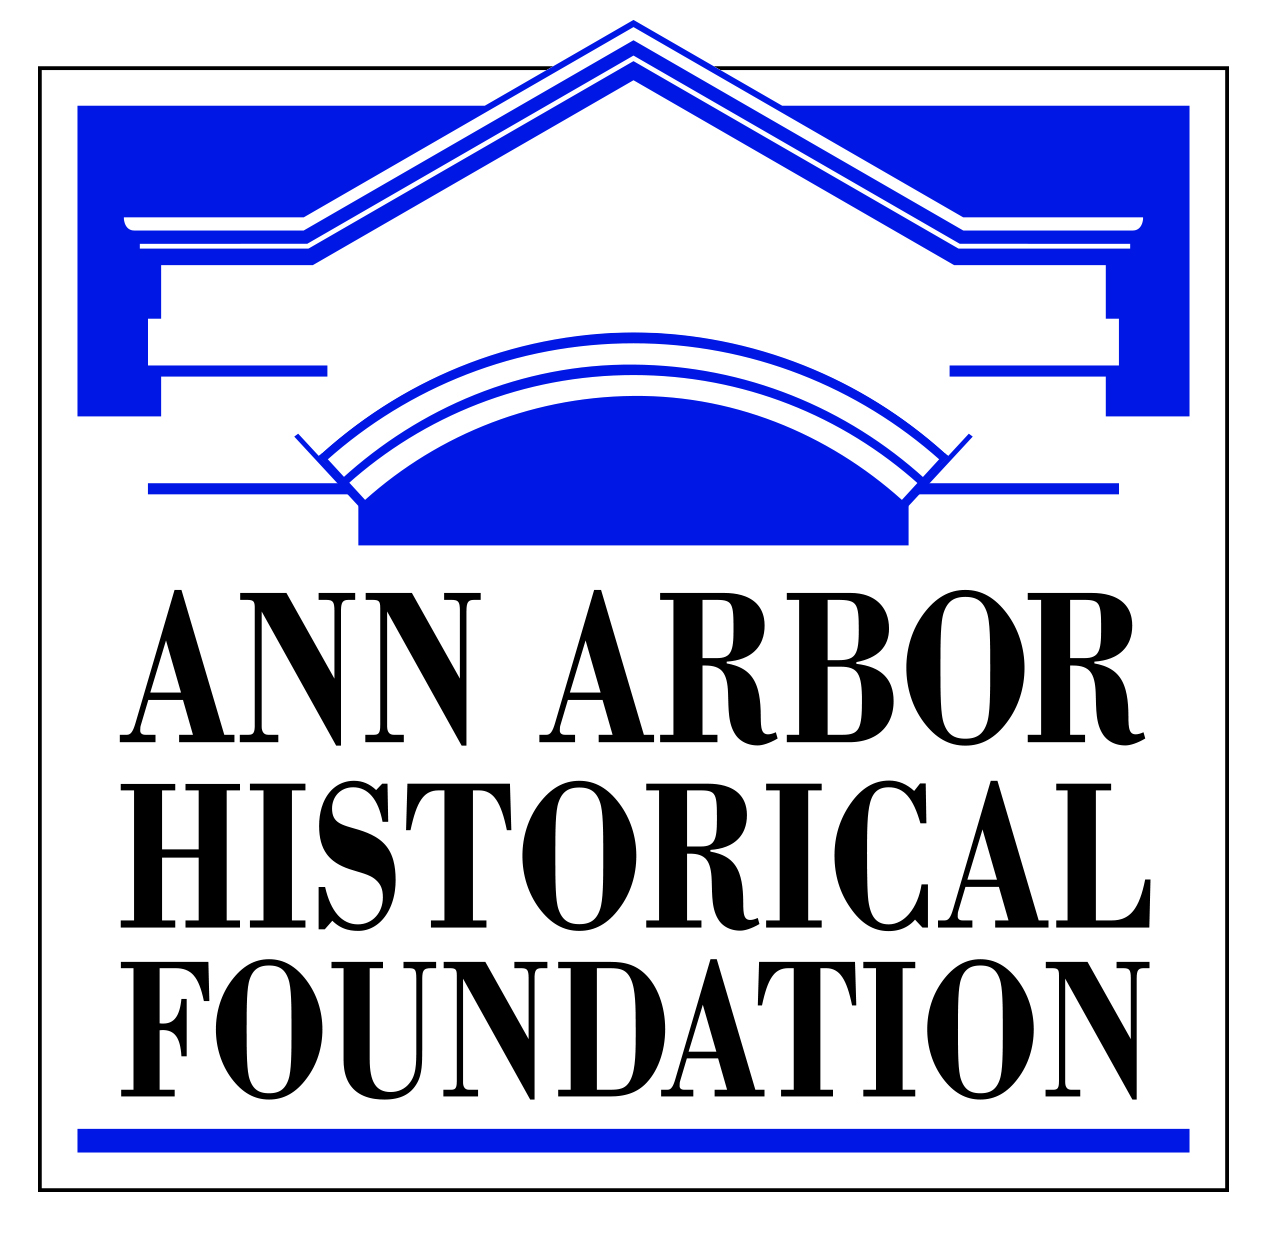 ann-arbor-historical-foundation-logo.jpg